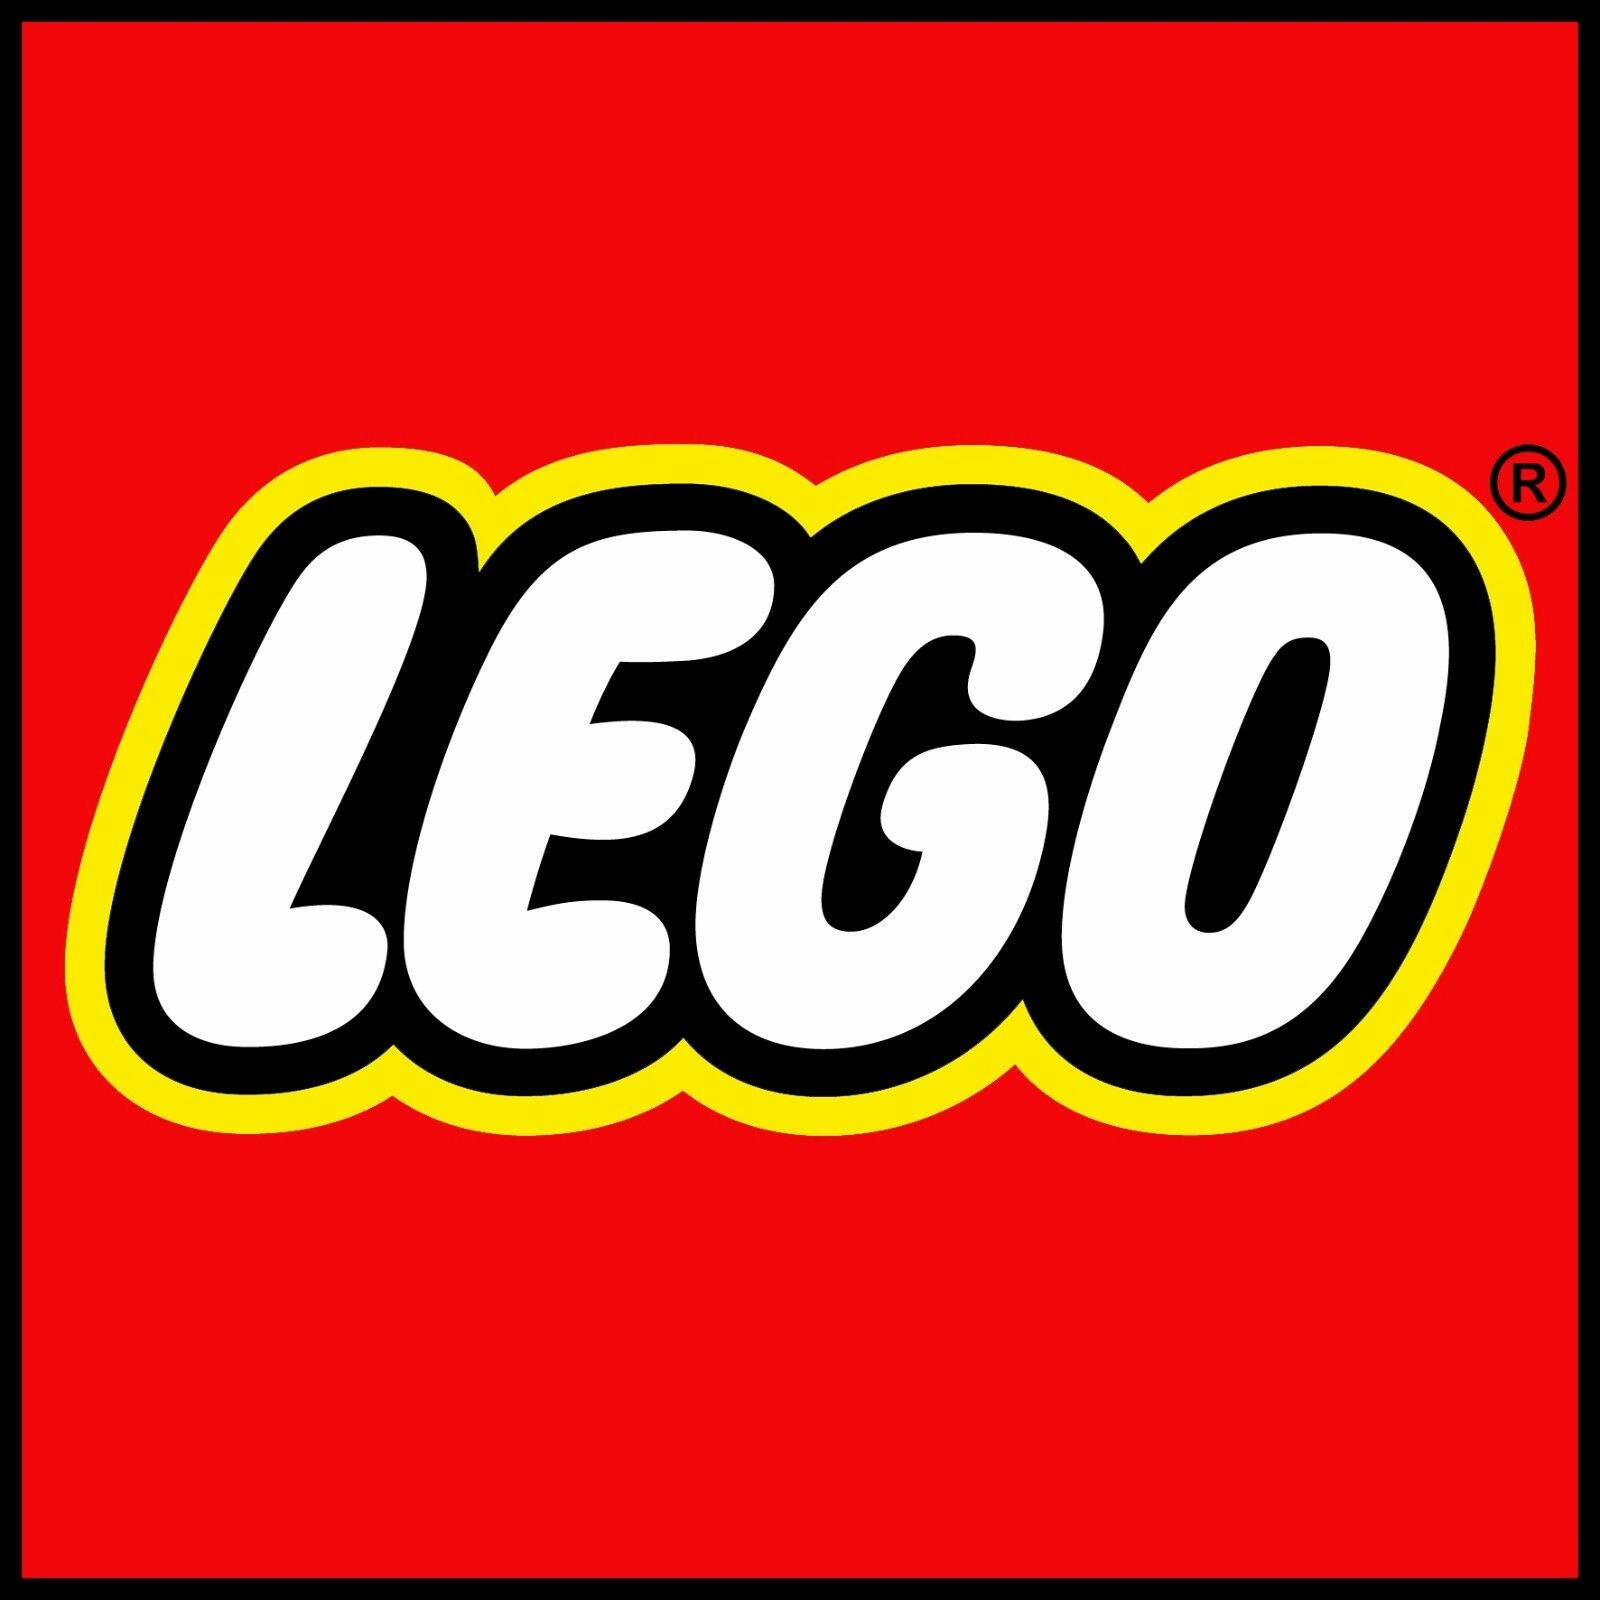 Lego Lot 1104   COMING SOON   TBU